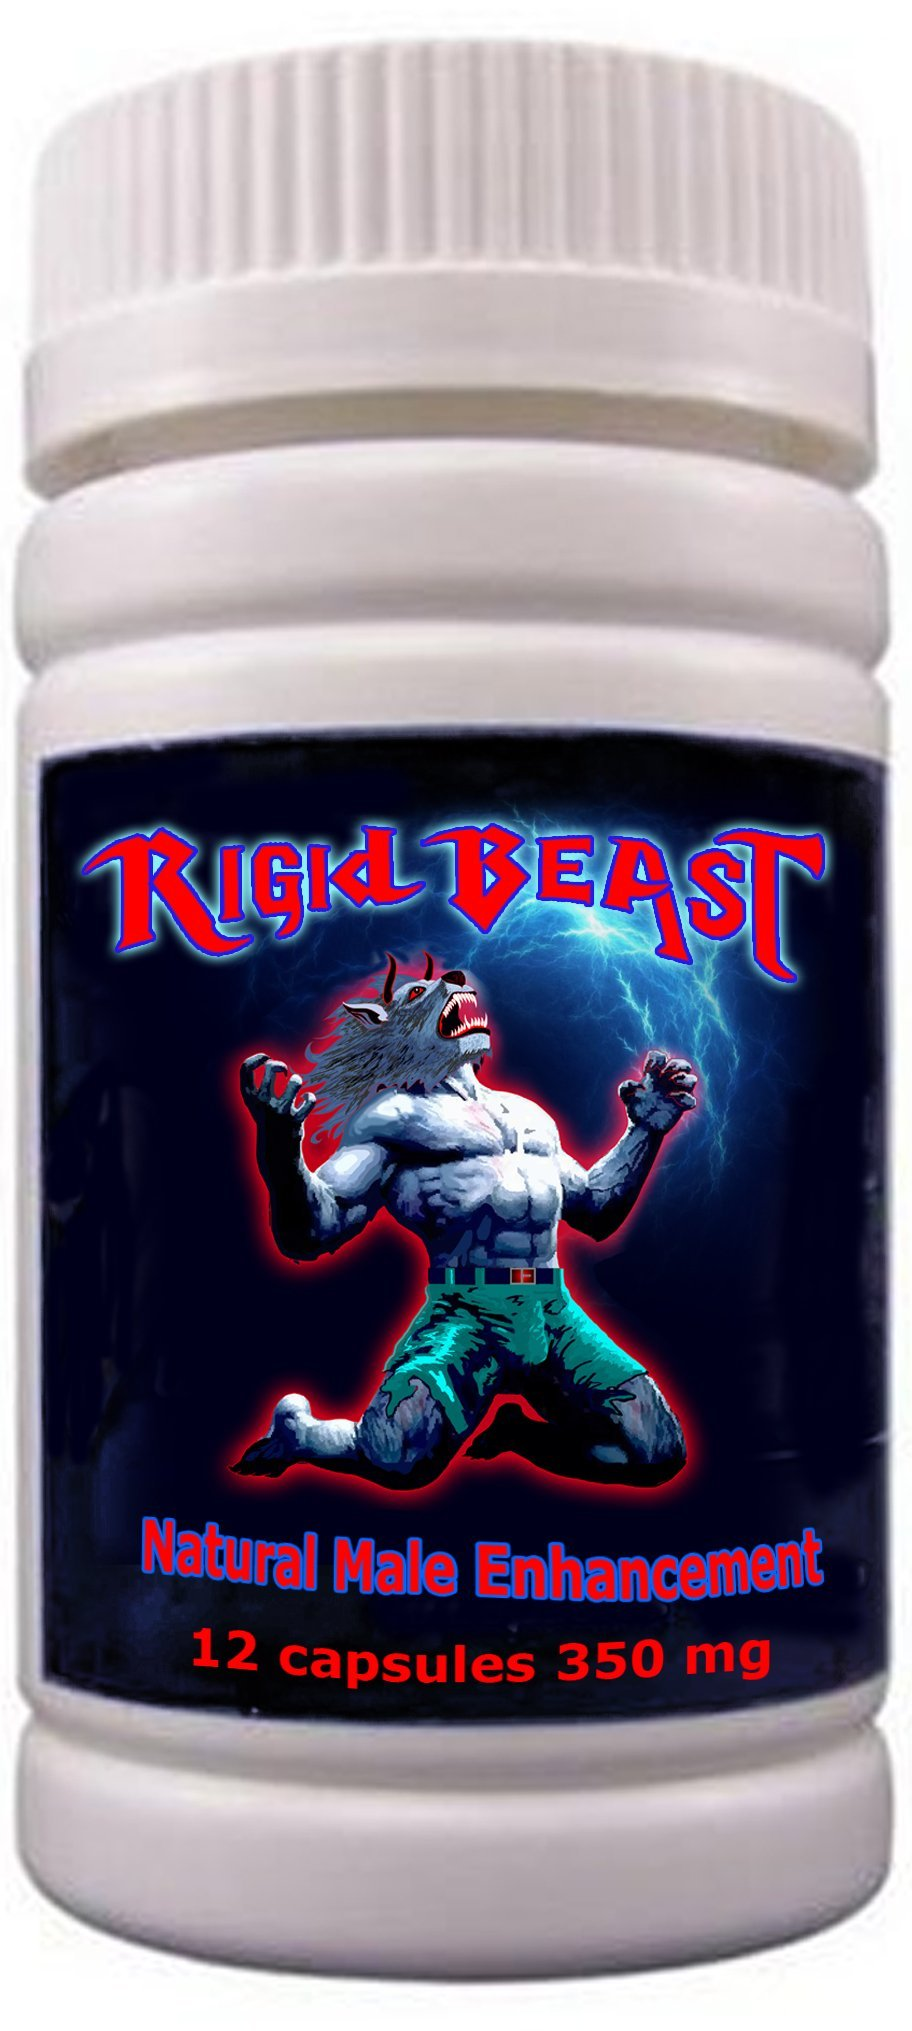 Male Enhancement Capsules, Rigid Beast Is the Best Male Enhancer Capsules for Bigger Thicker , Harder & Lasting Erections in Just One Hour, You Will Boost Your Sex Drive for 24 Hours Icreasing Sexual Performance Gettin Stronger and Wild Like Rigid Beast.